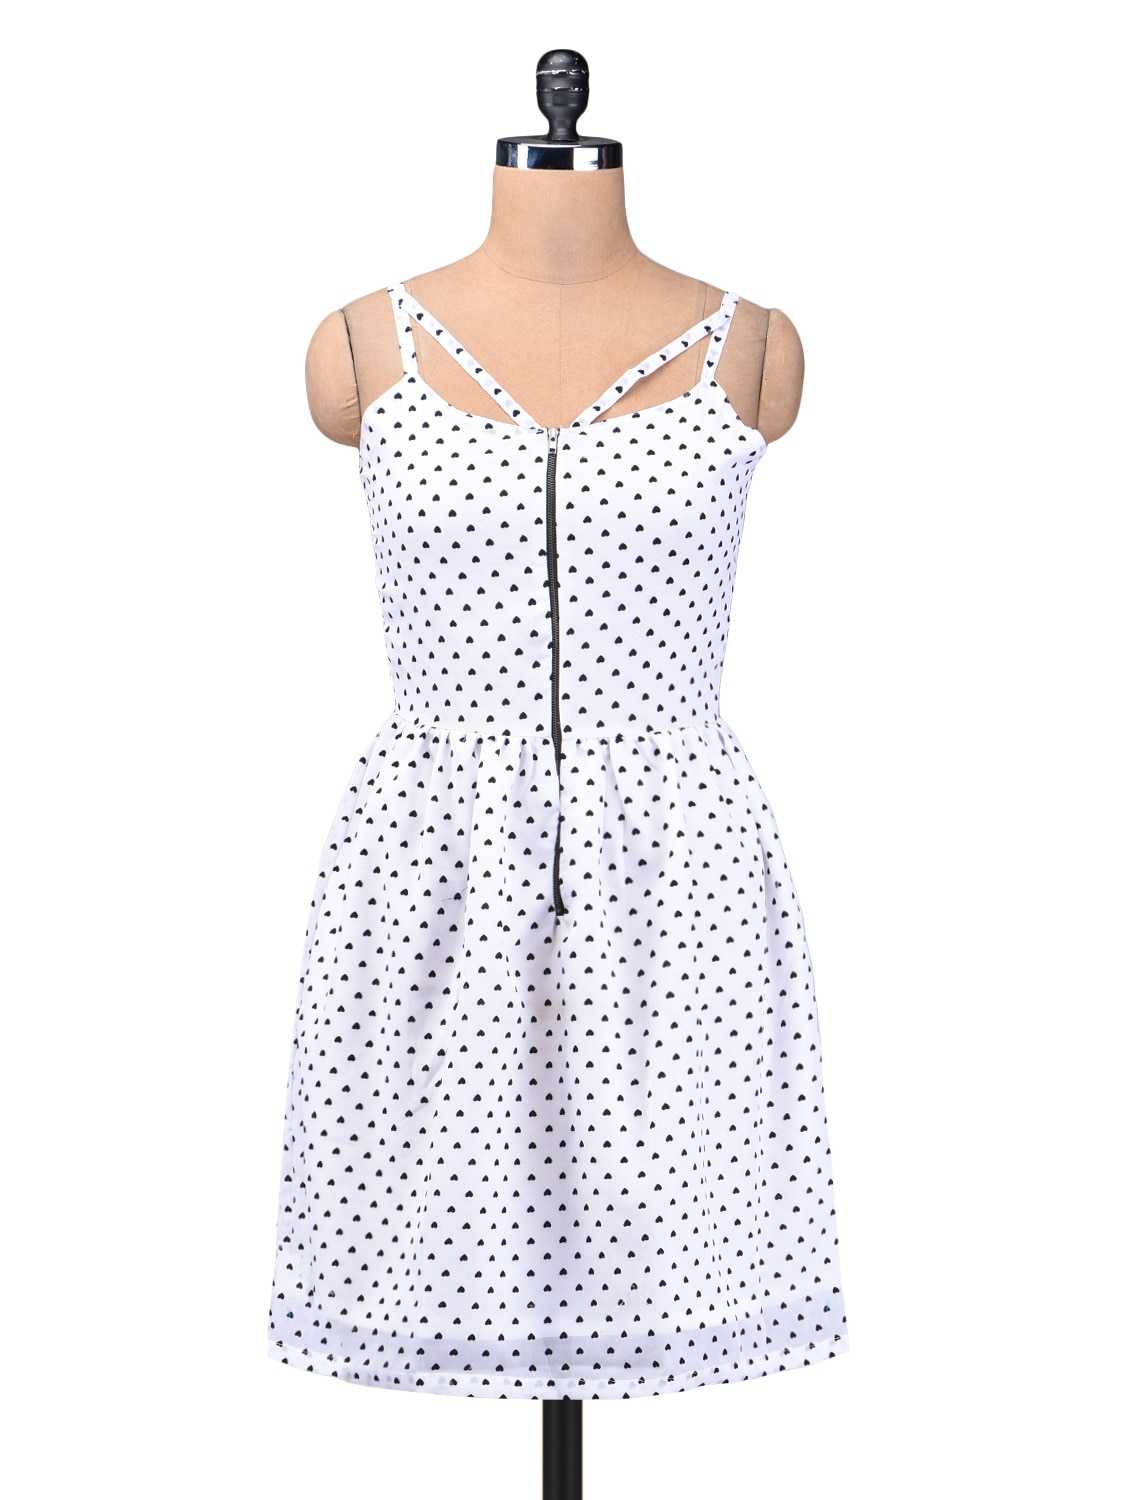 Black And White Polygeorgette Printed Dress - By